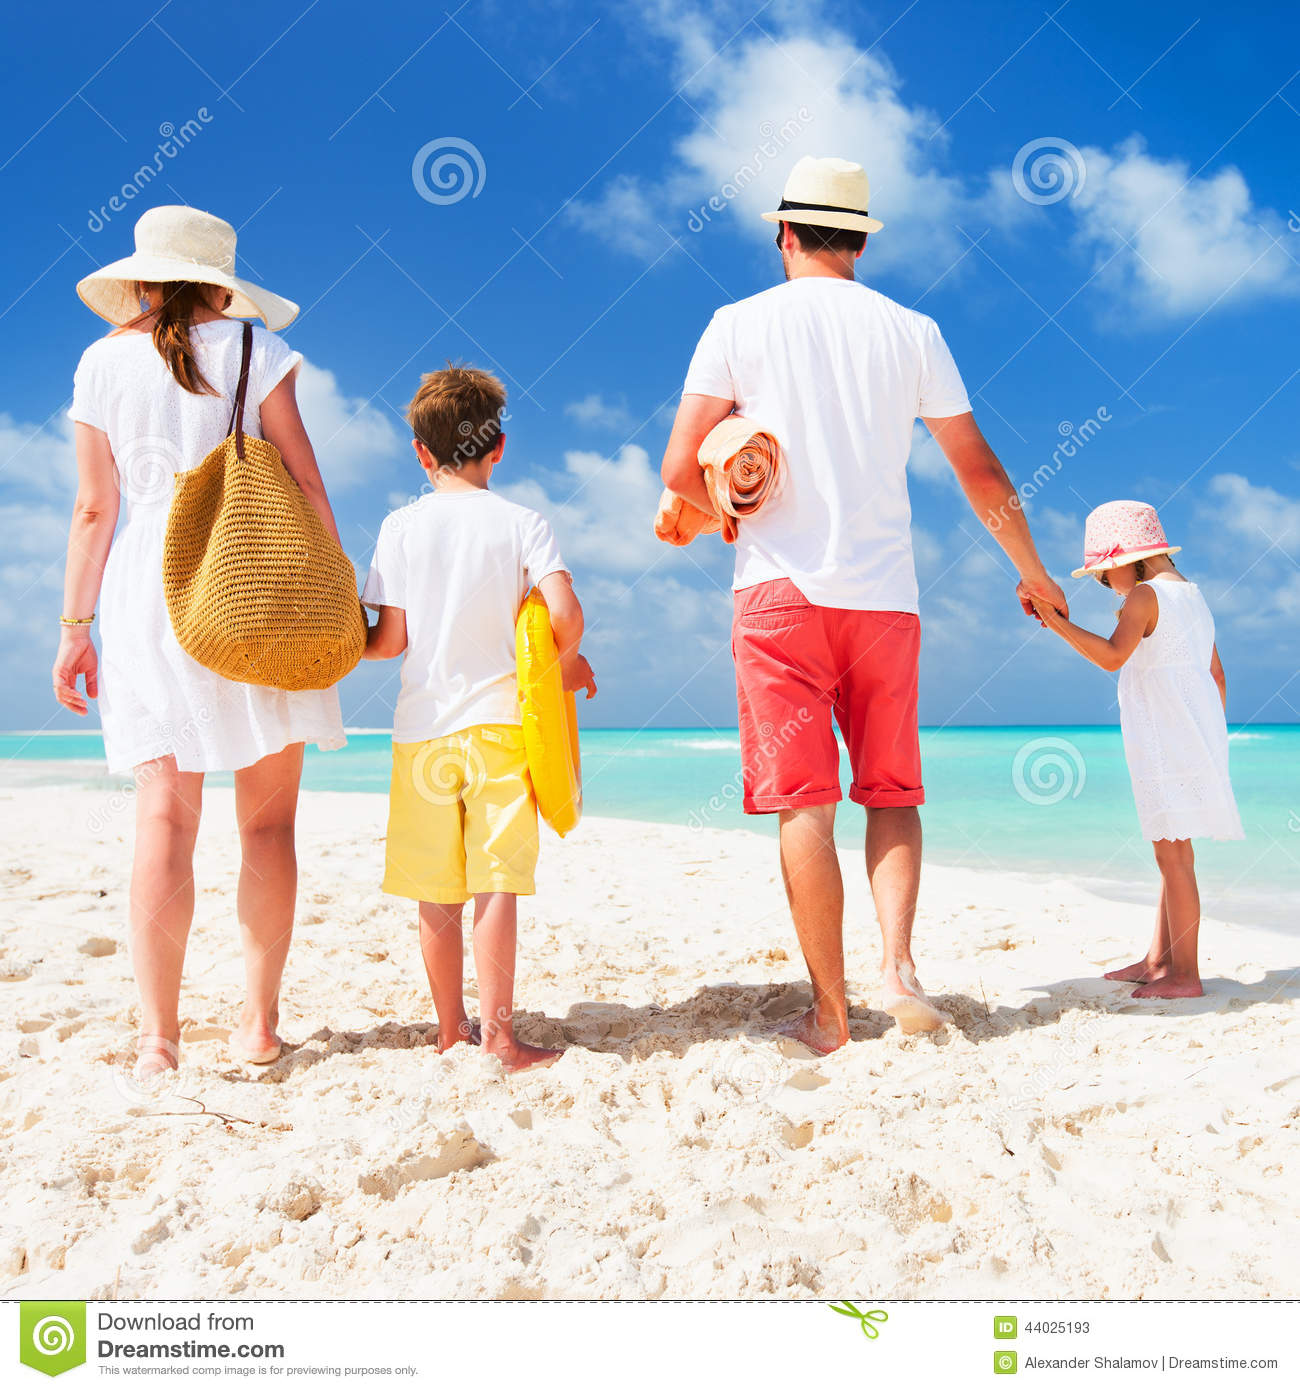 Family Beach Vacation Stock Image. Image Of Sister